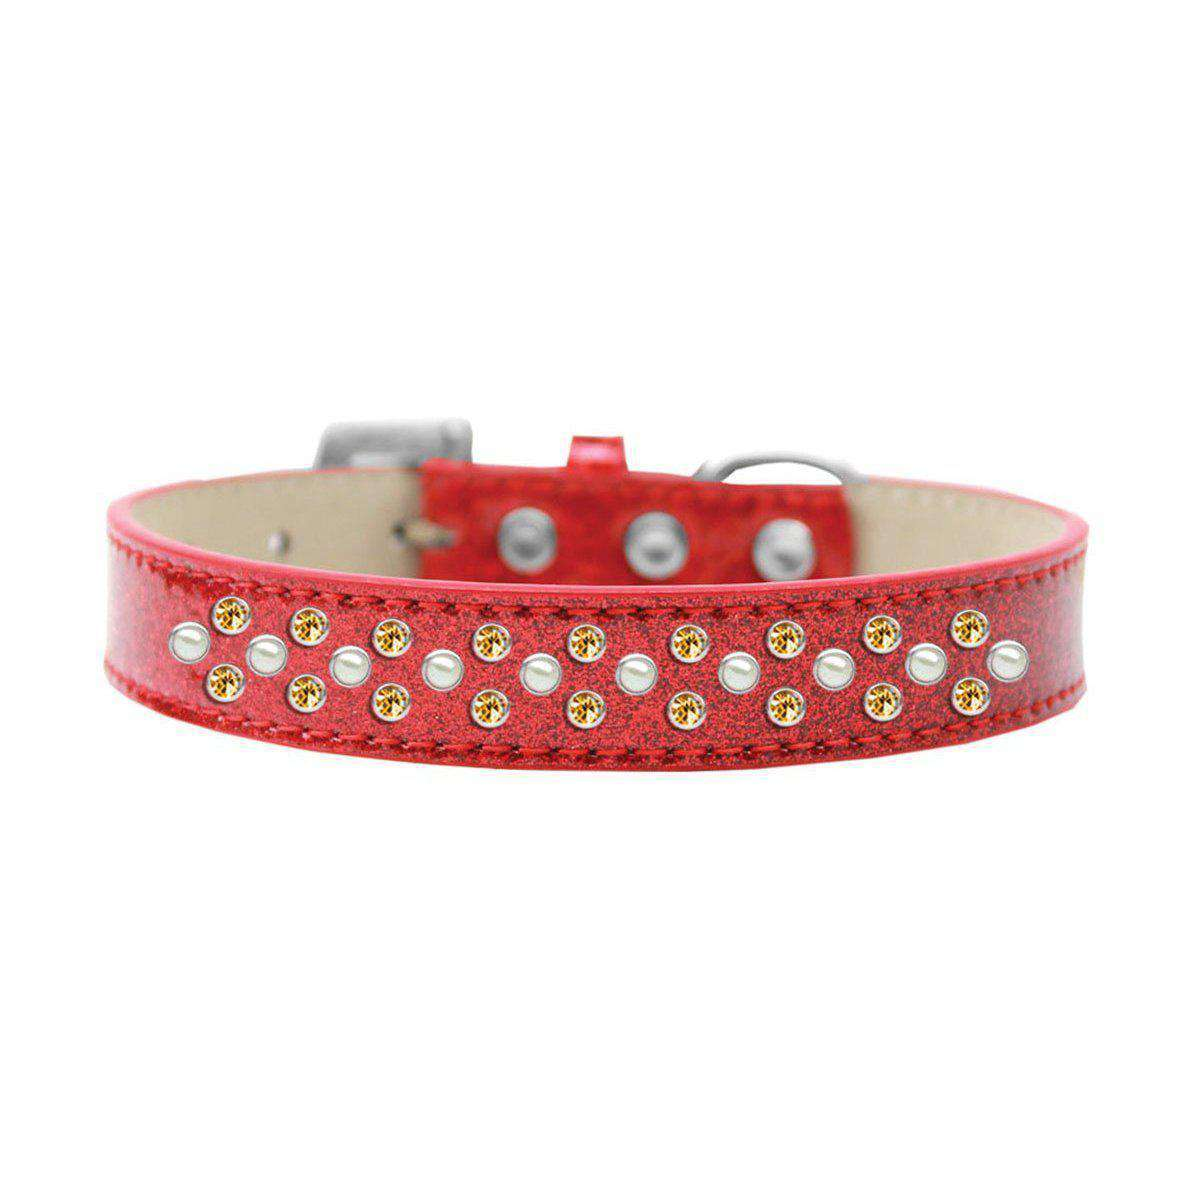 Mirage Pet Sprinkles Ice Cream Adjustable Dog Collar Pearl And Yellow Crystals Size 18 - Red-Mirage Pet Products-DirtyFurClothing